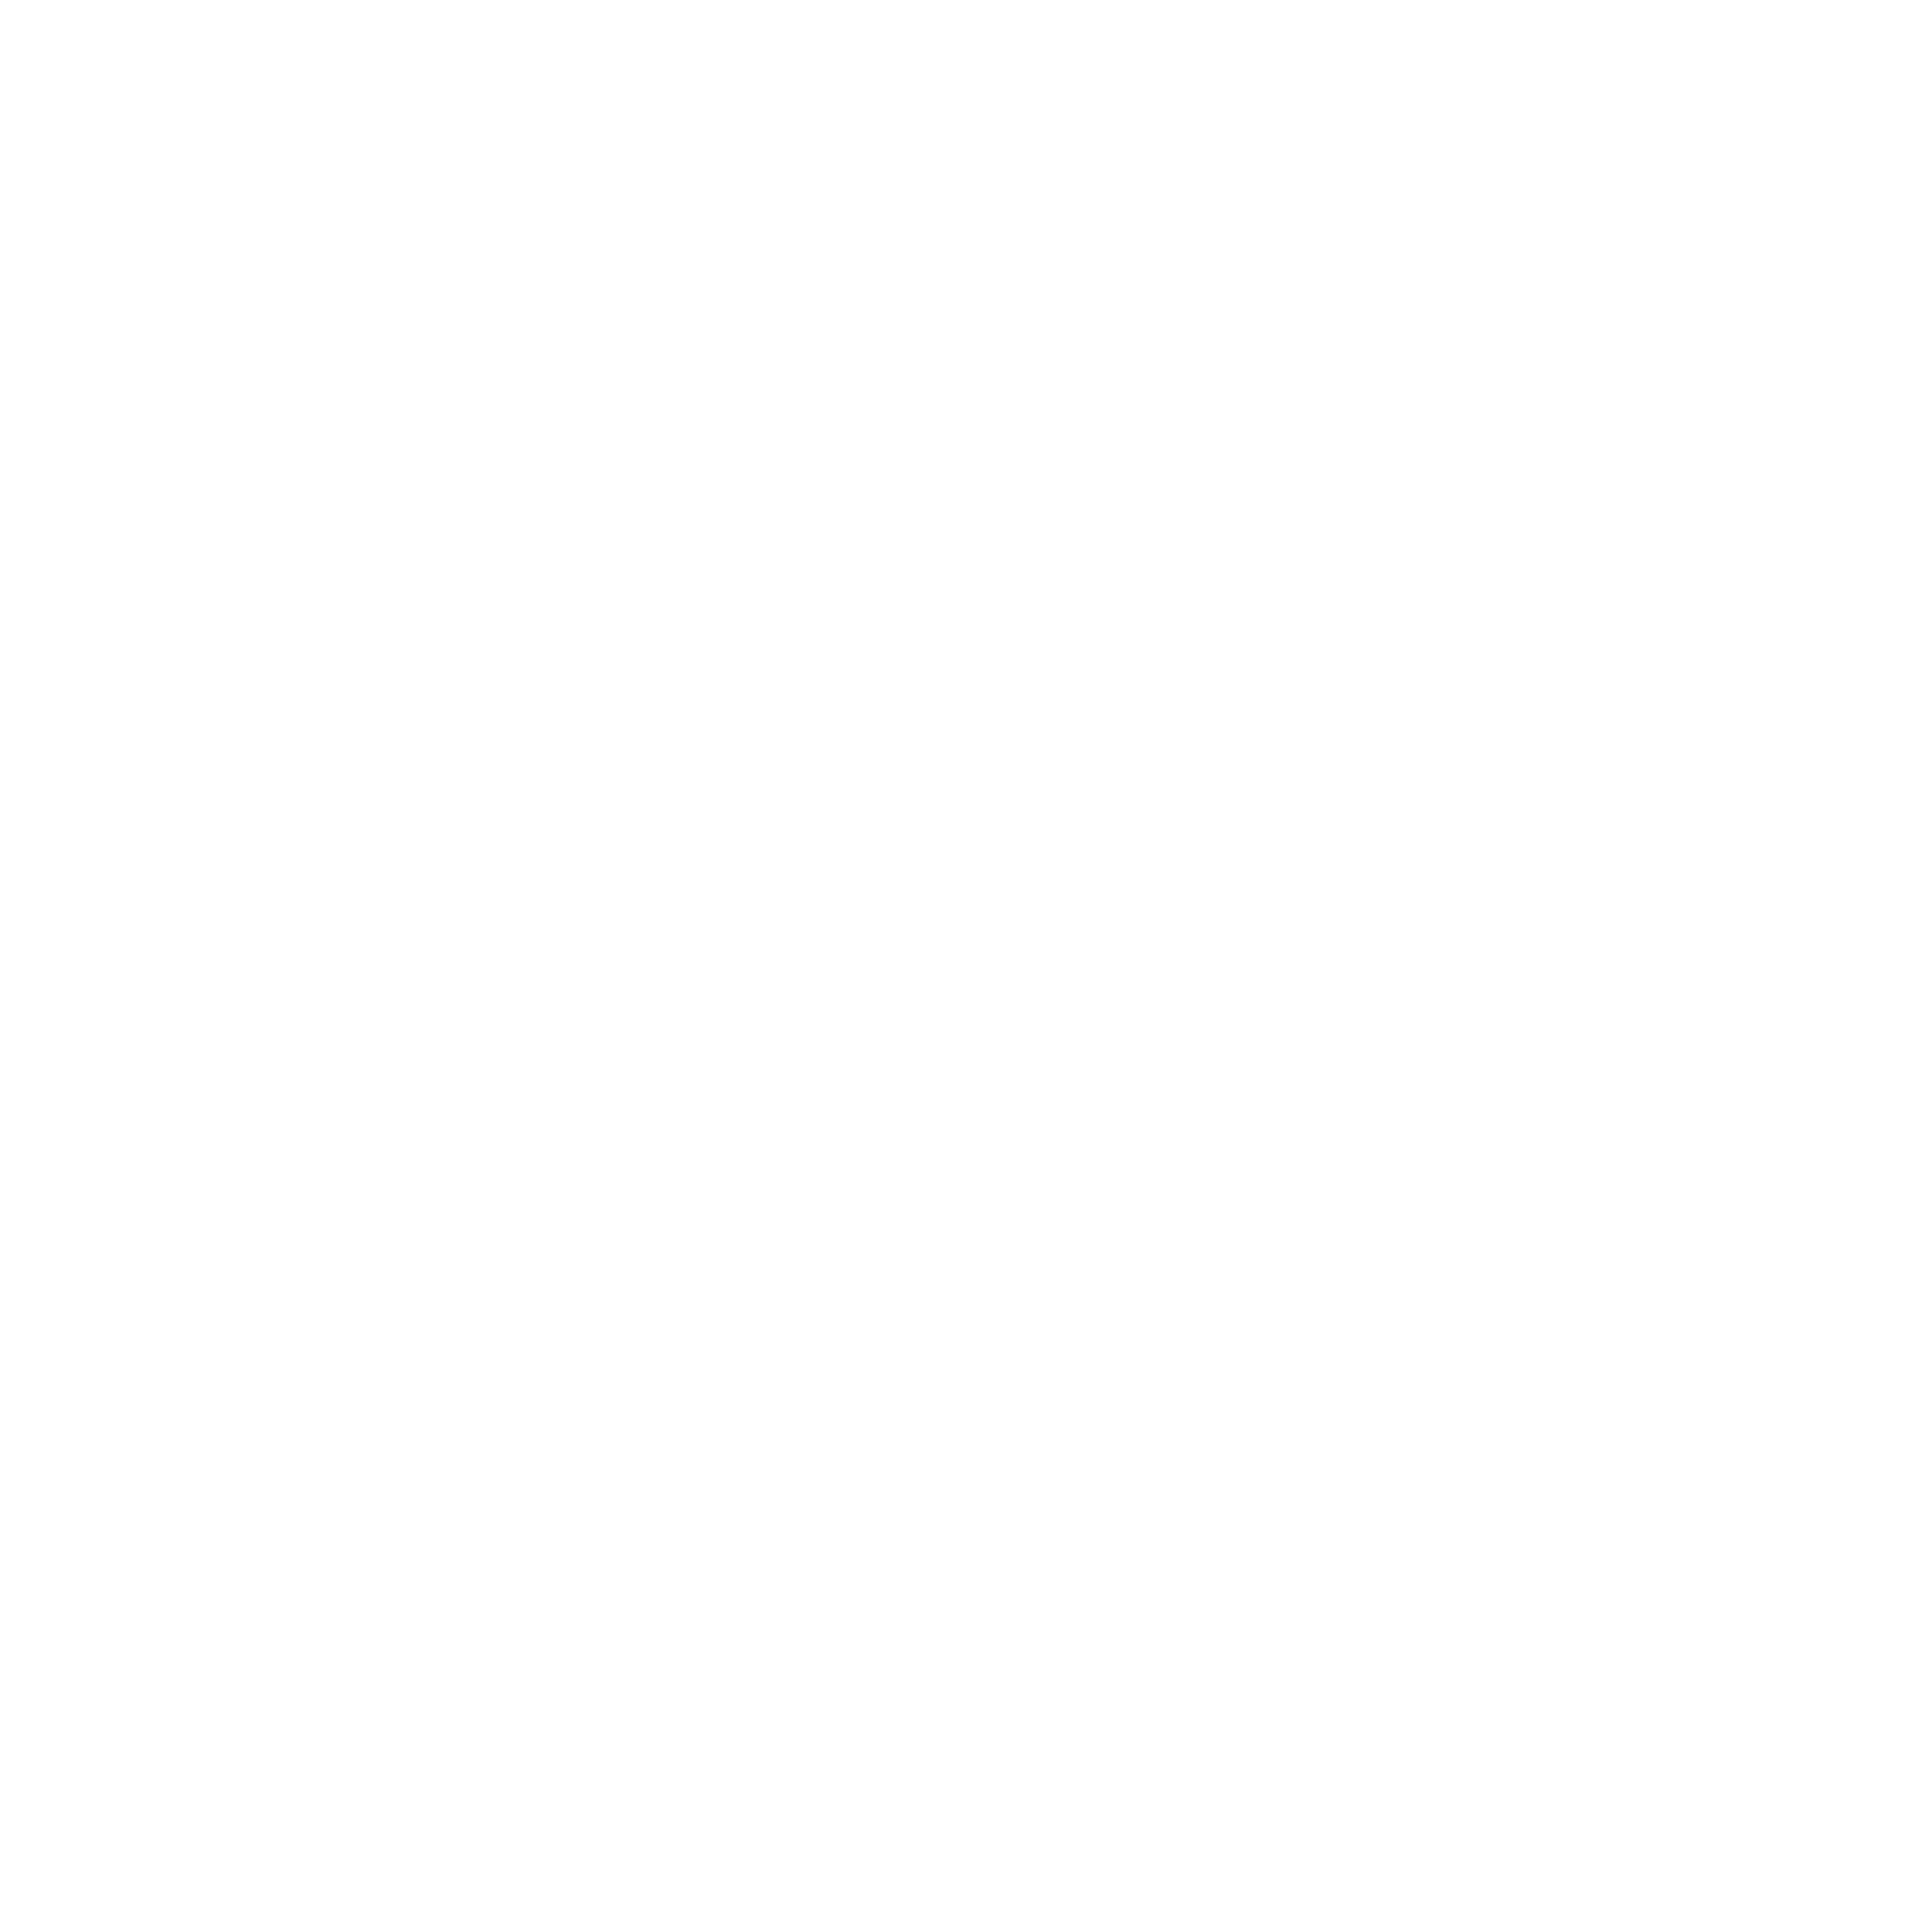 Staying safe and healthy blackand white clipart vector black and white stock Water Safety | American Red Cross vector black and white stock